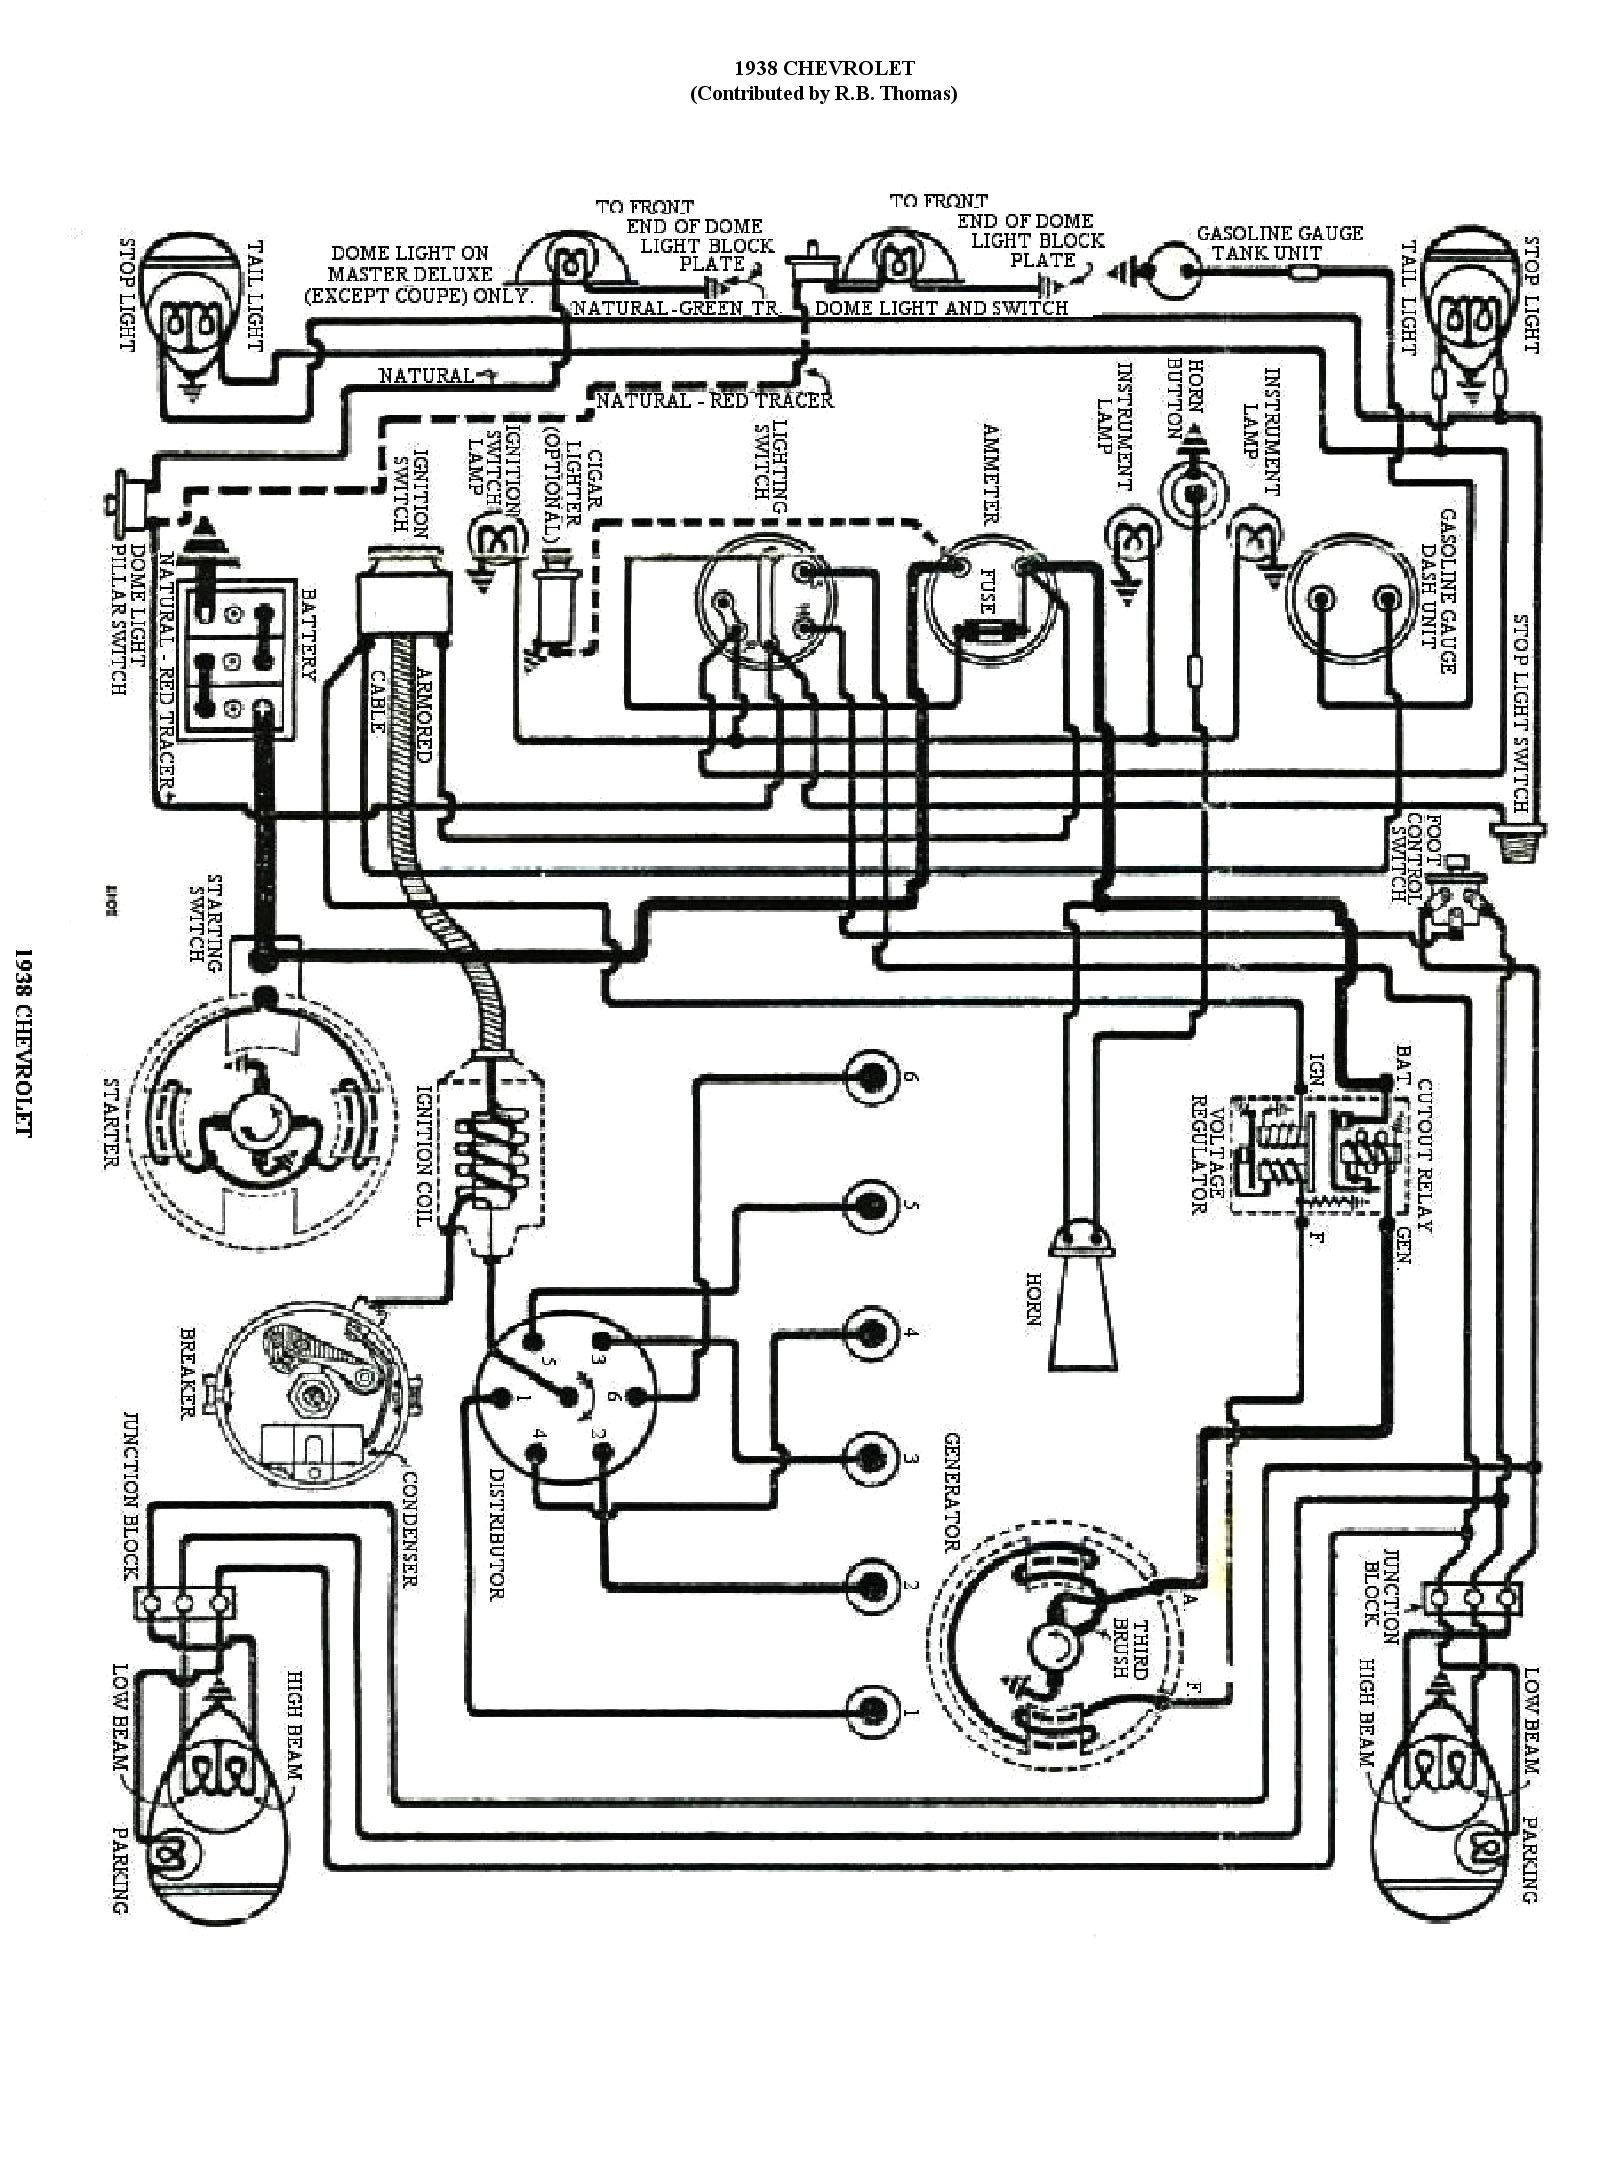 1938 chevy wiring diagram